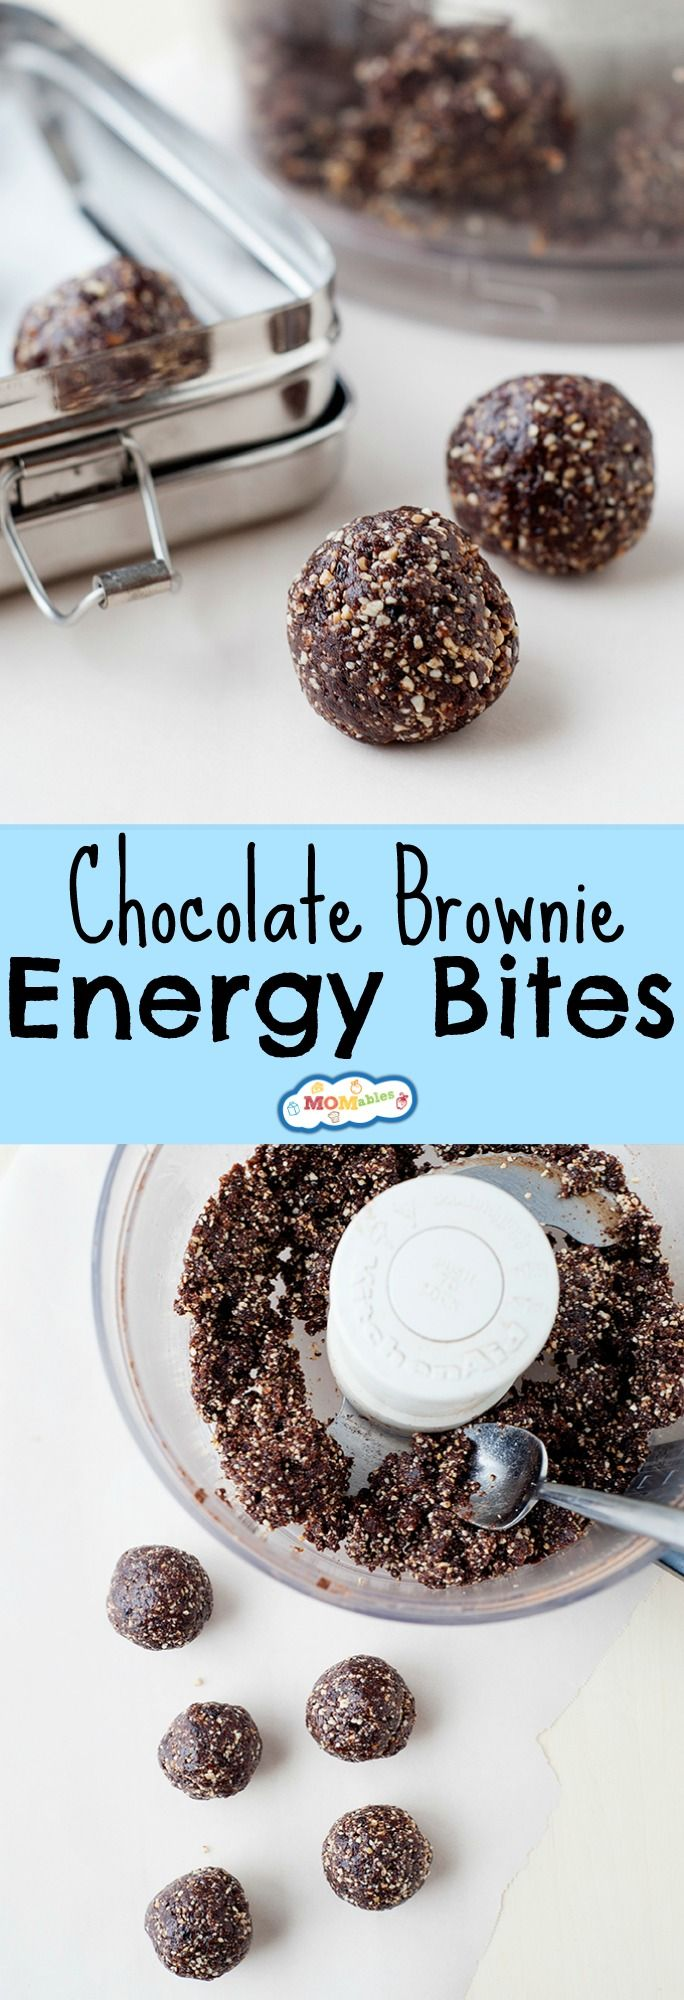 Need a healthy afternoon pick-me-up? These Chocolate Brownie Energy Bites are perfect for your kids' after-school snack time or as a sweet treat for lunch.